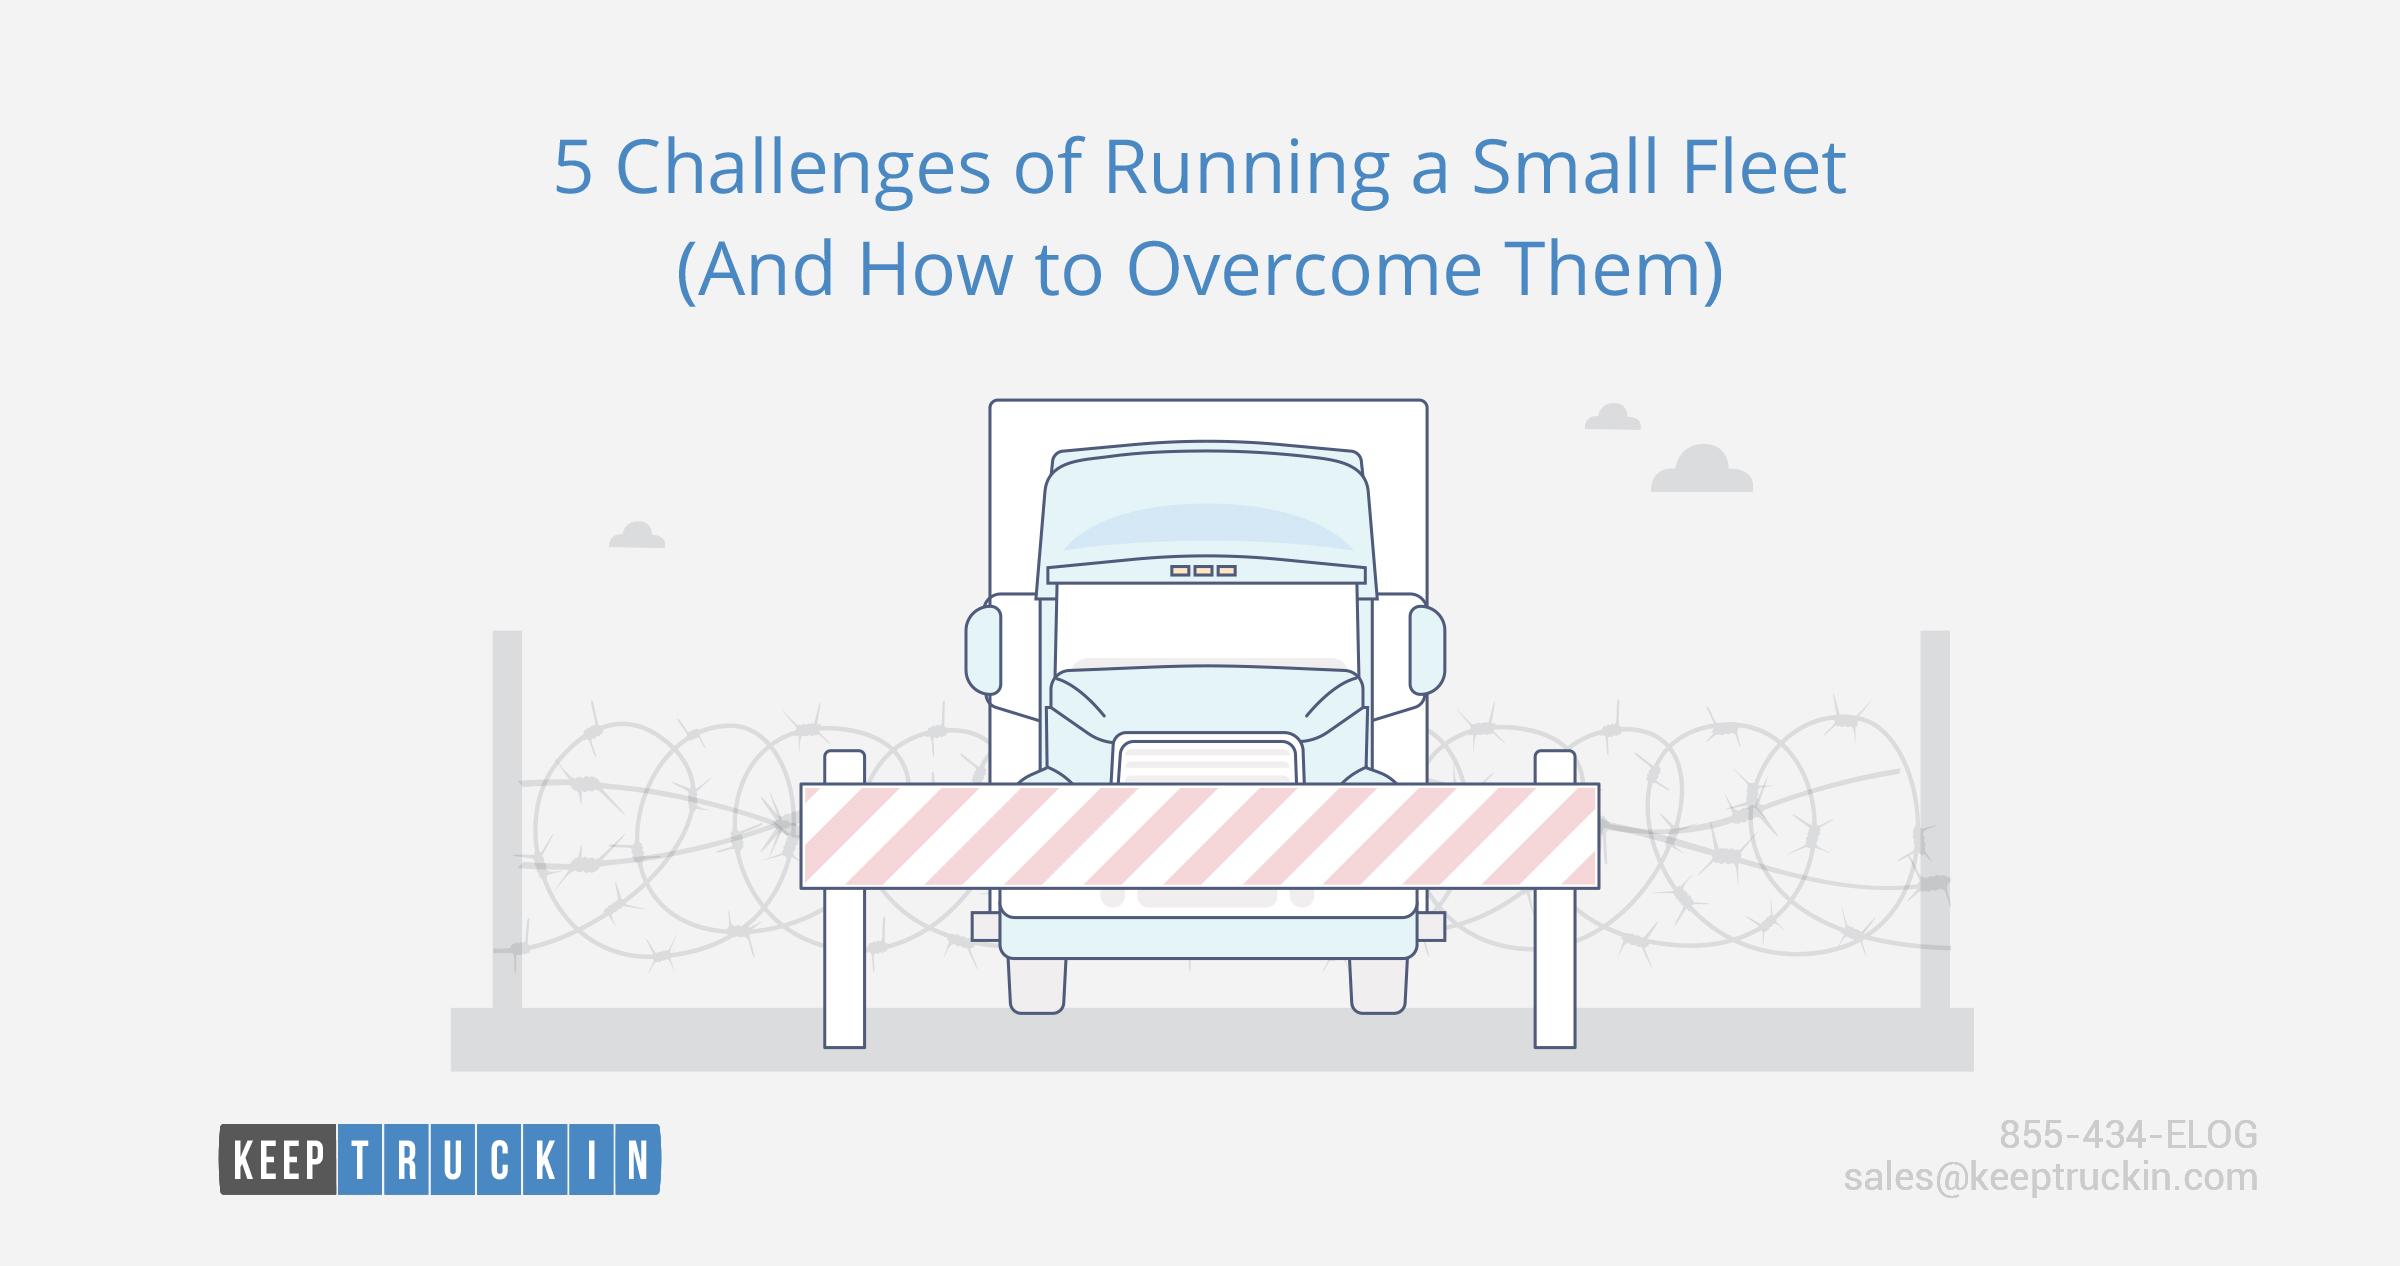 5 Challenges of Running a Small Fleet (And How to Overcome Them)